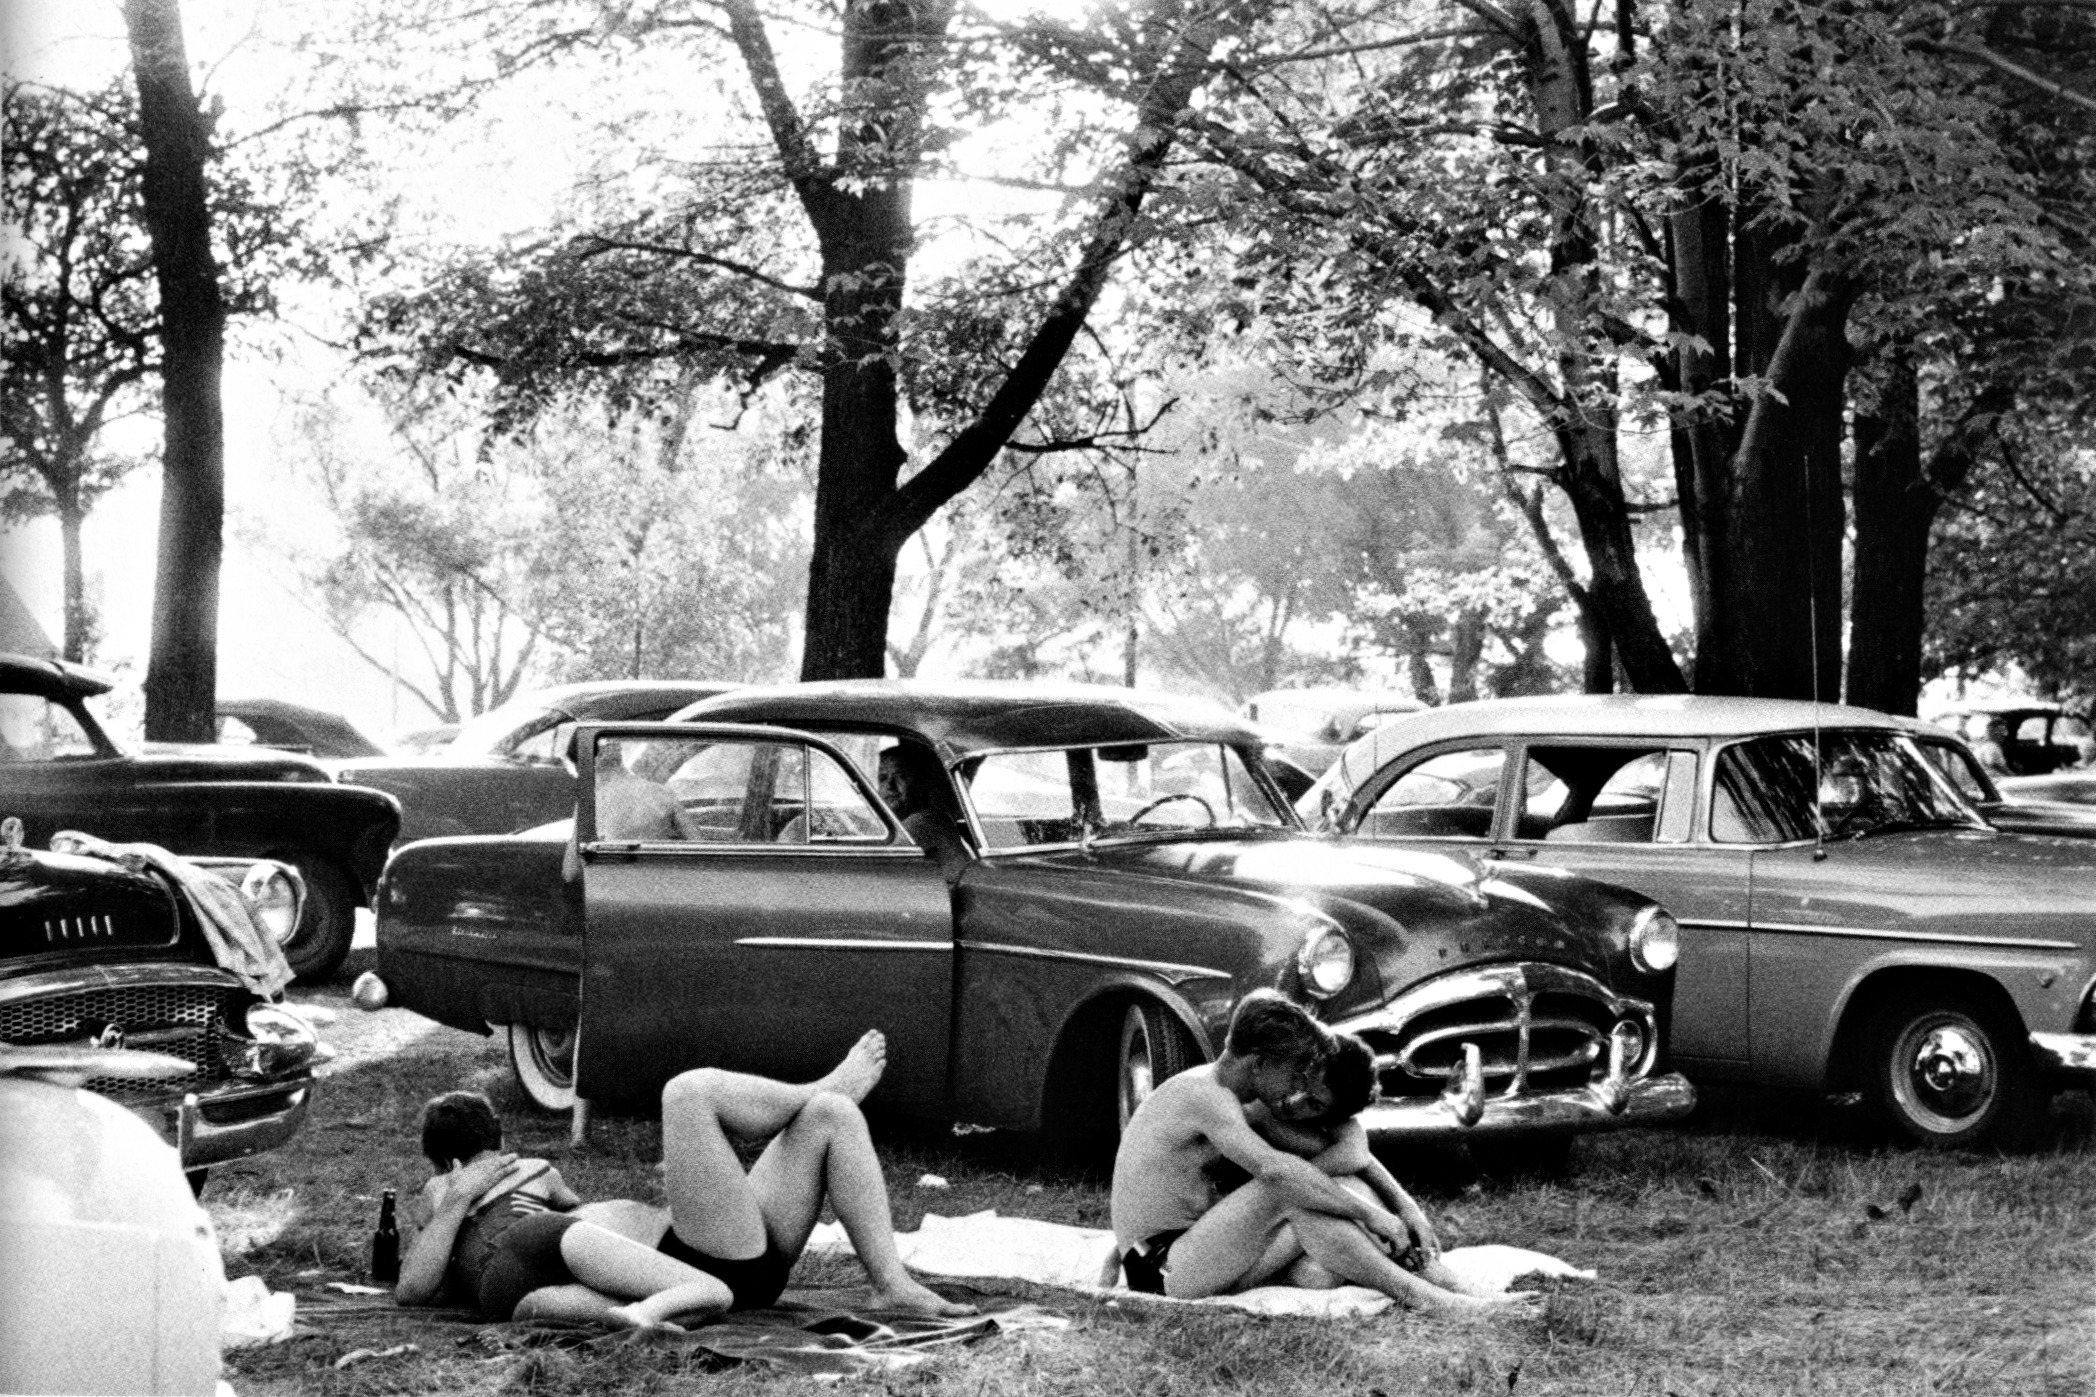 #80 Public park - Ann Arbor, Michigan, 1955